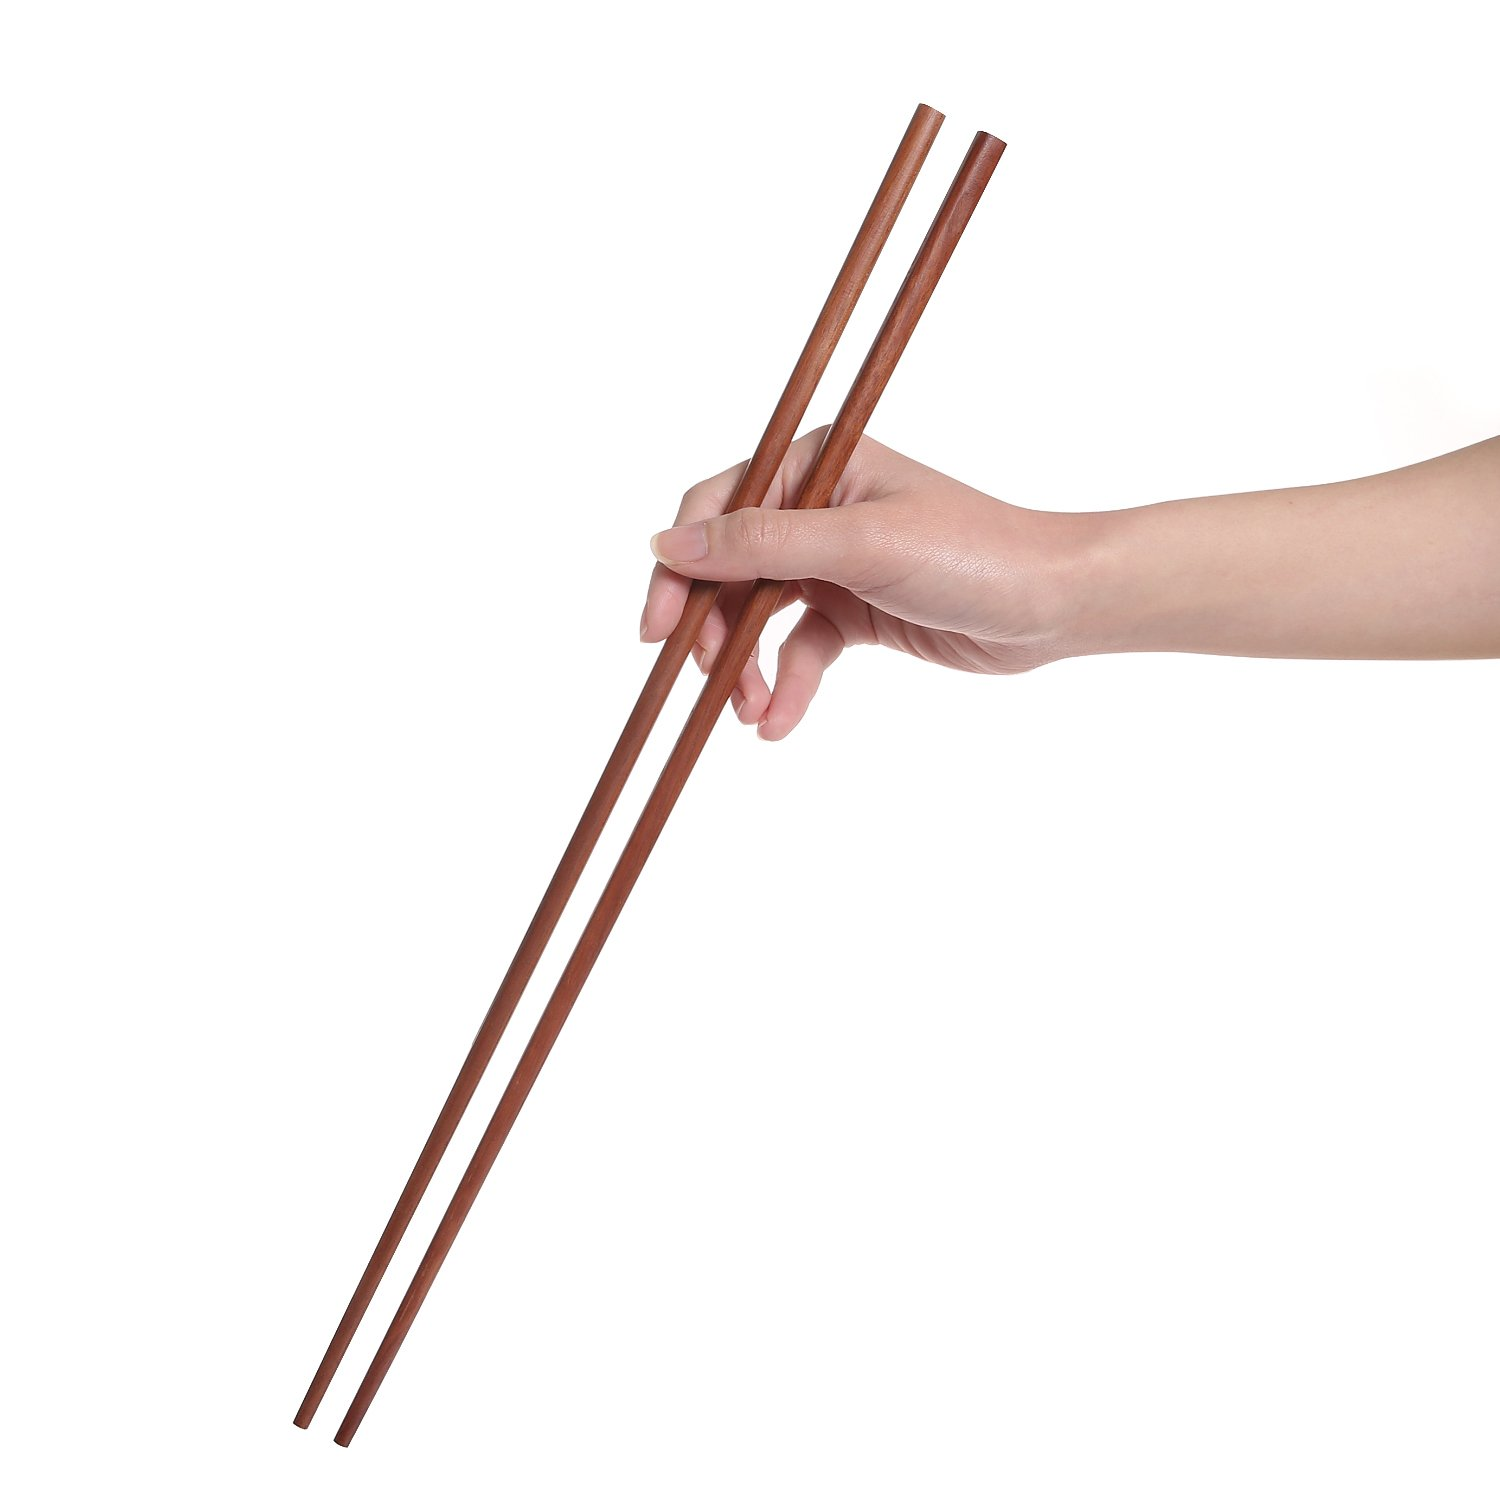 Donxote Wooden Noodles Kitchen Cooking Frying Chopsticks 16.5 Inches Brown Extra Long Set of 2 Pairs